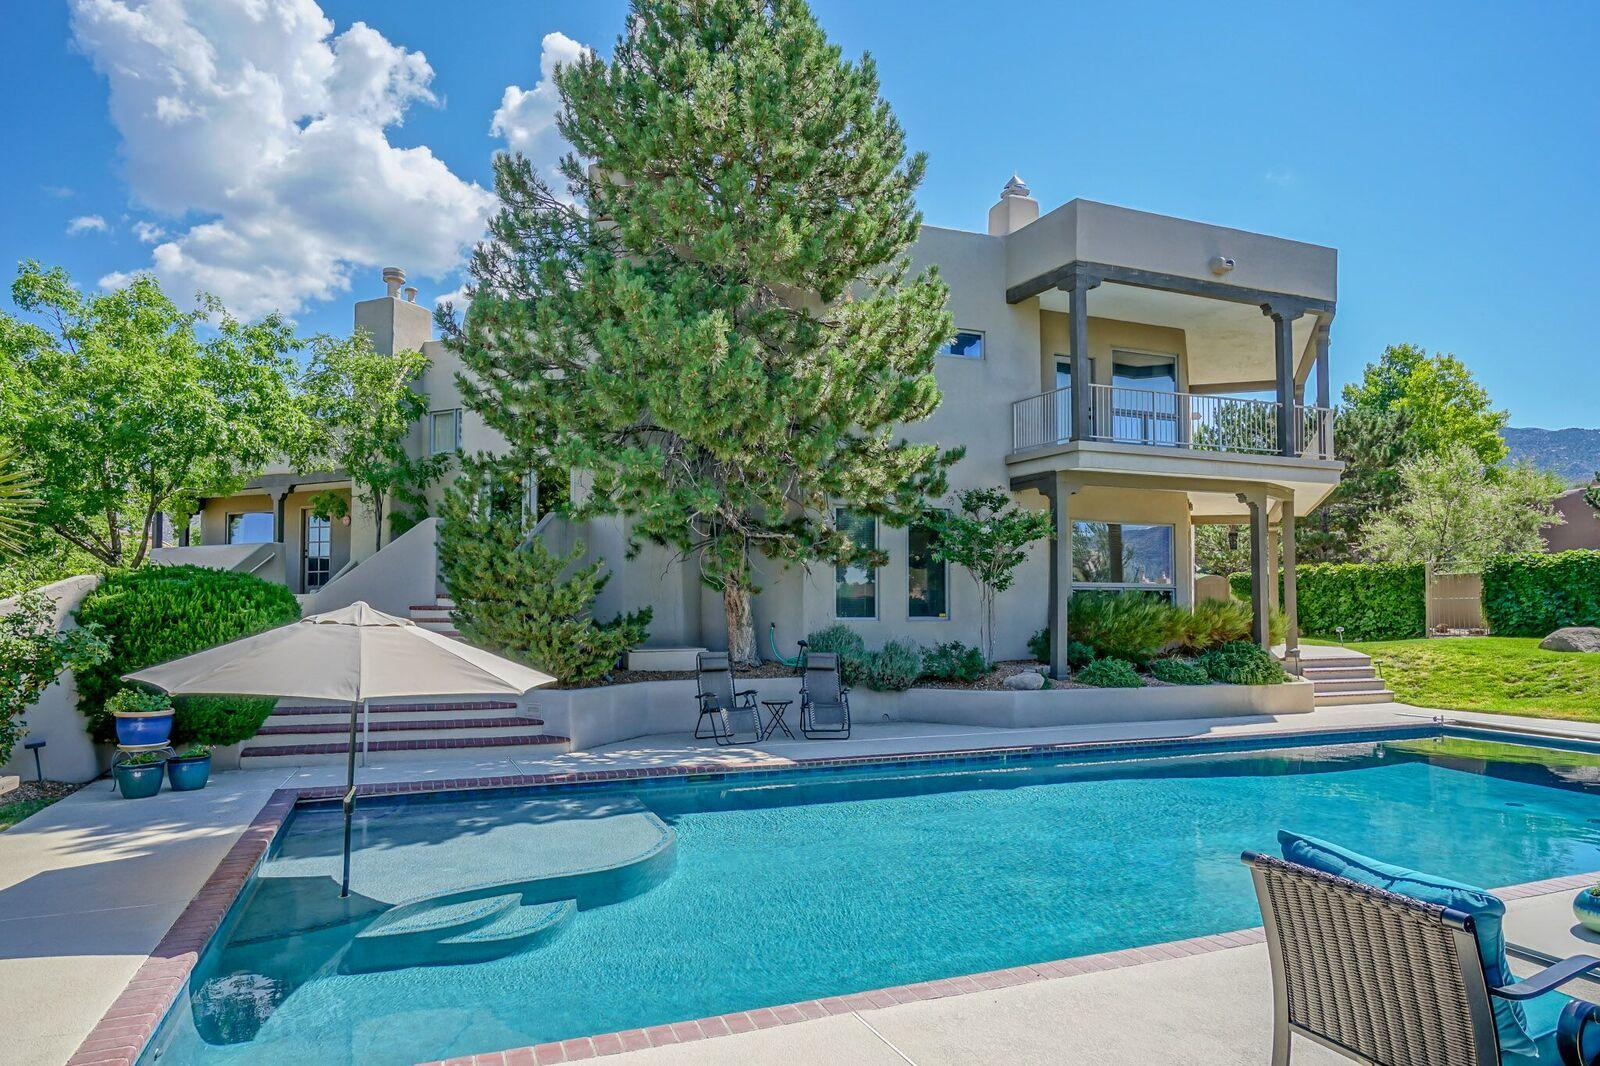 1553 EAGLE RIDGE LANE NE, ALBUQUERQUE, NM 87122